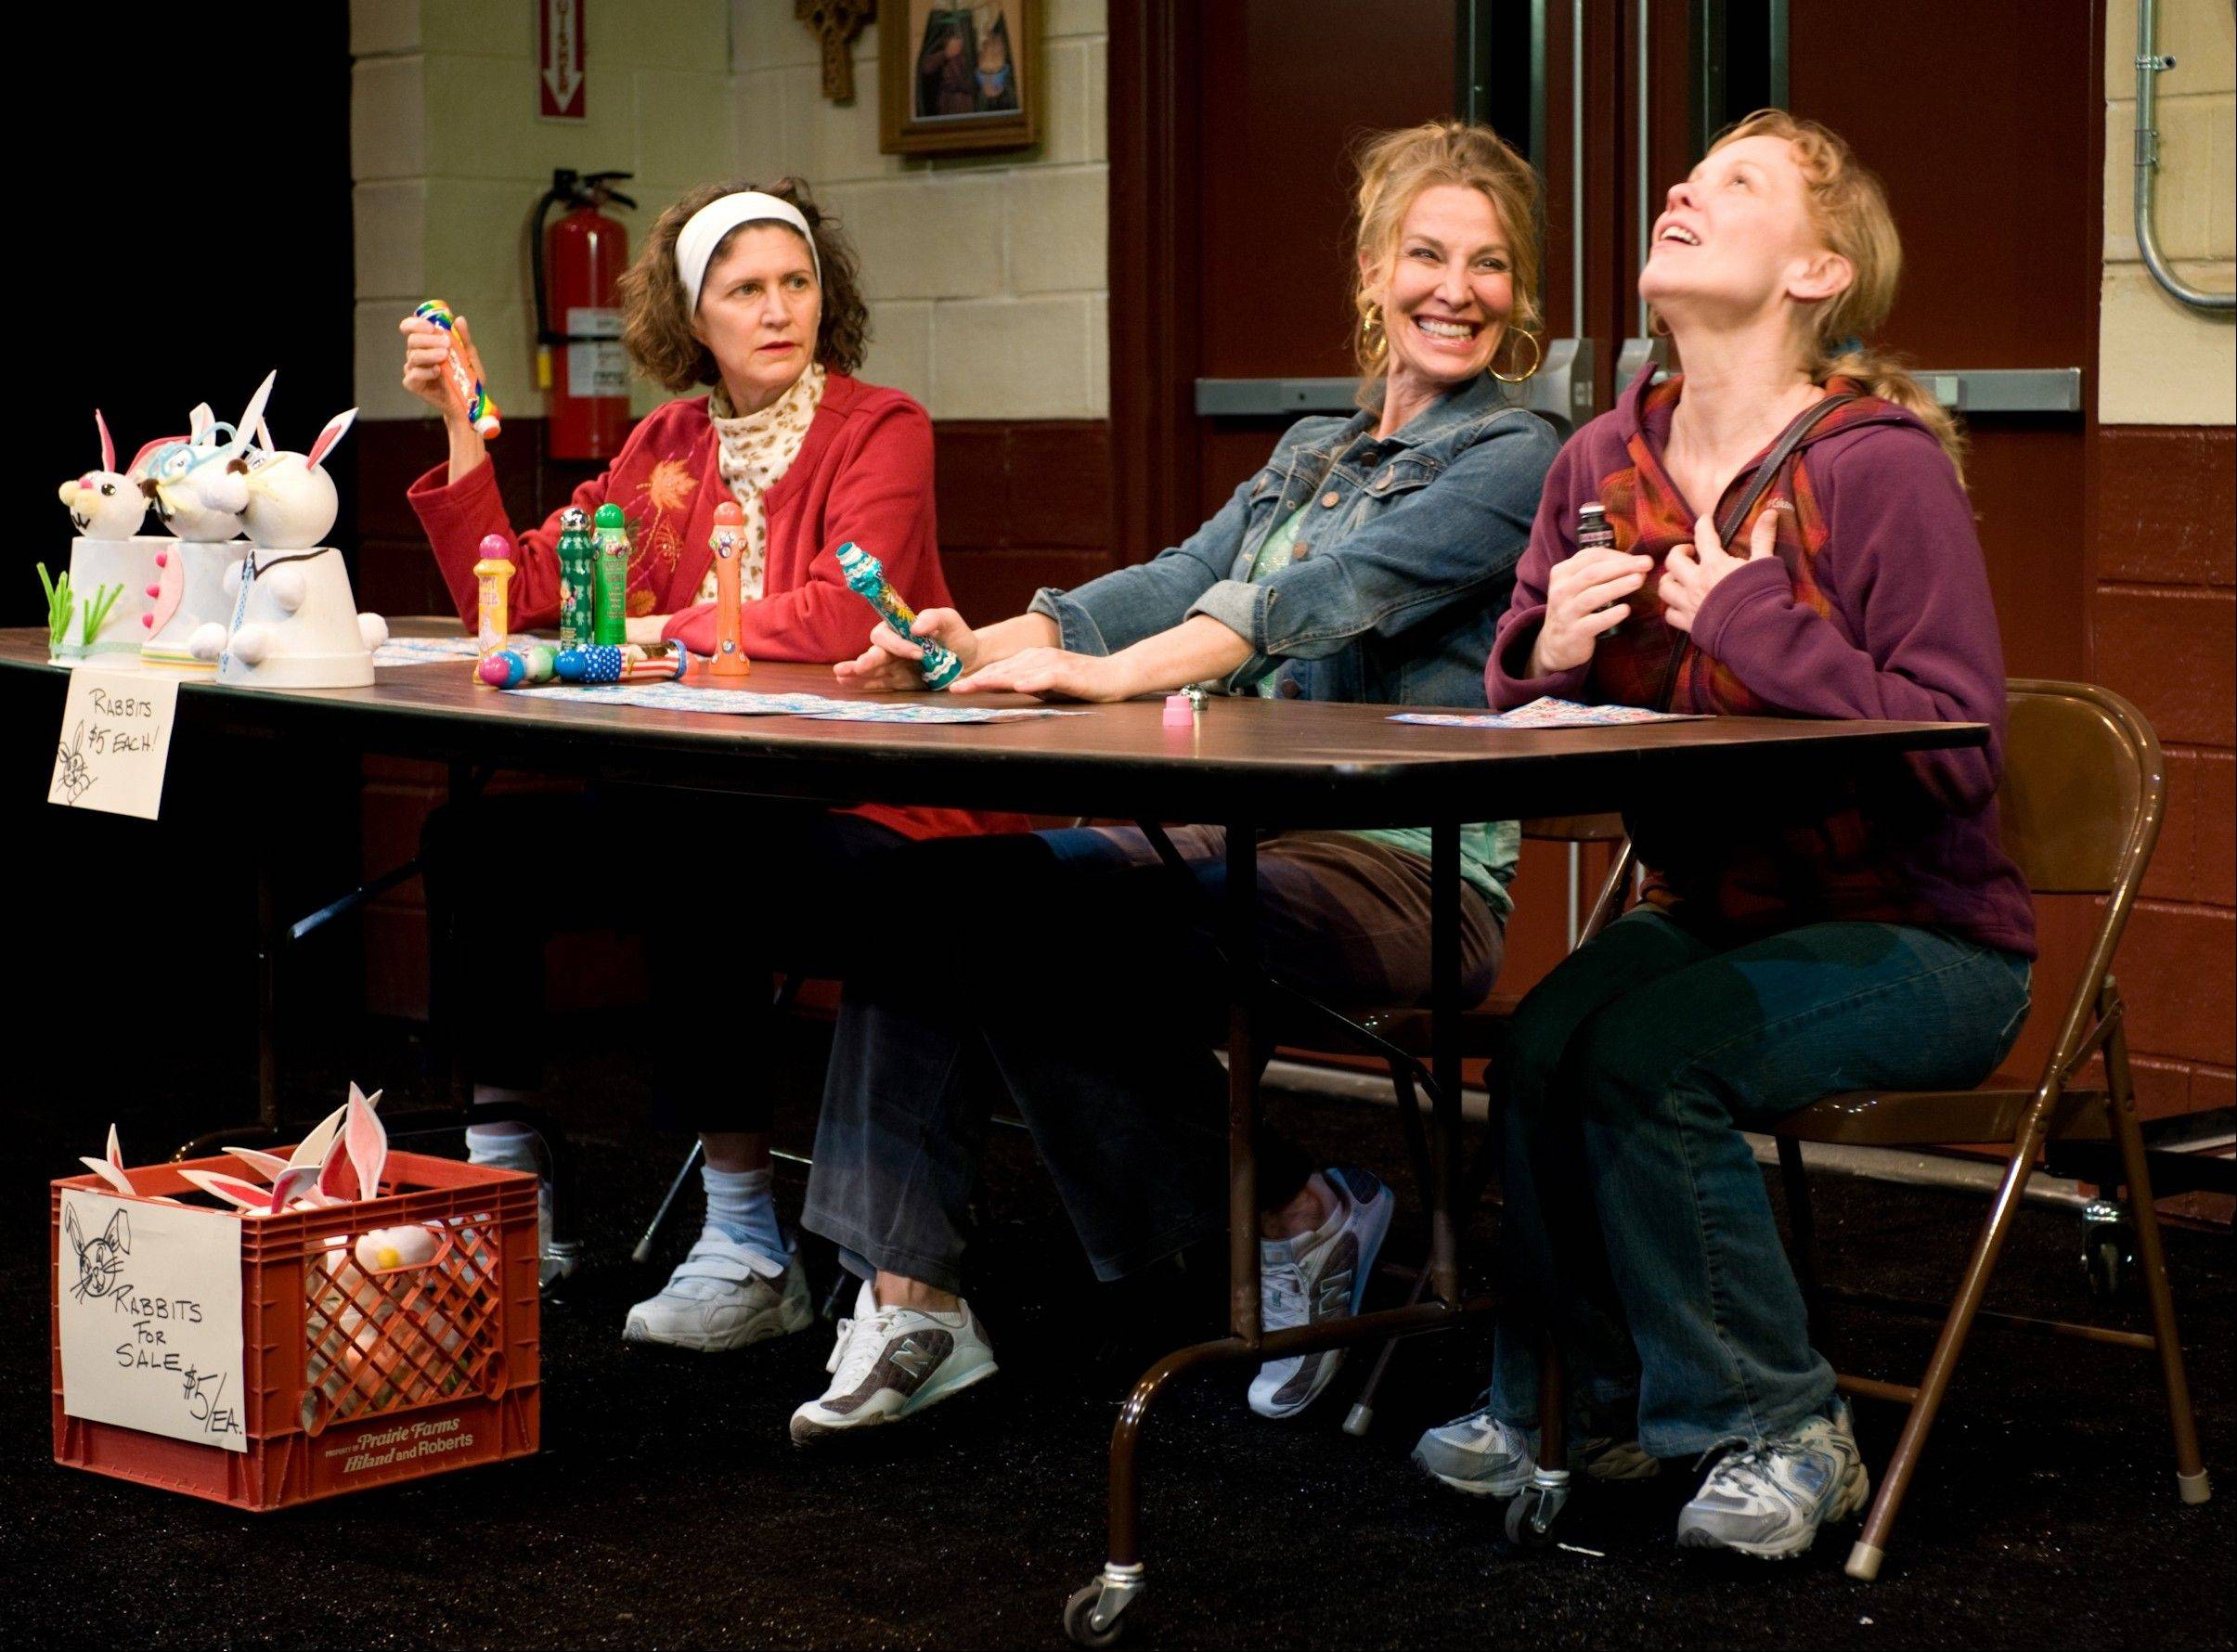 "Mariann Mayberry, right, received a 2013 Jeff Award for performance by an actress in a principal role for her portrayal of a struggling, newly unemployed single mother Margy in Steppenwolf Theatre's ""Good People,"" which also featured Lusia Strus, center, and Molly Regan, left."